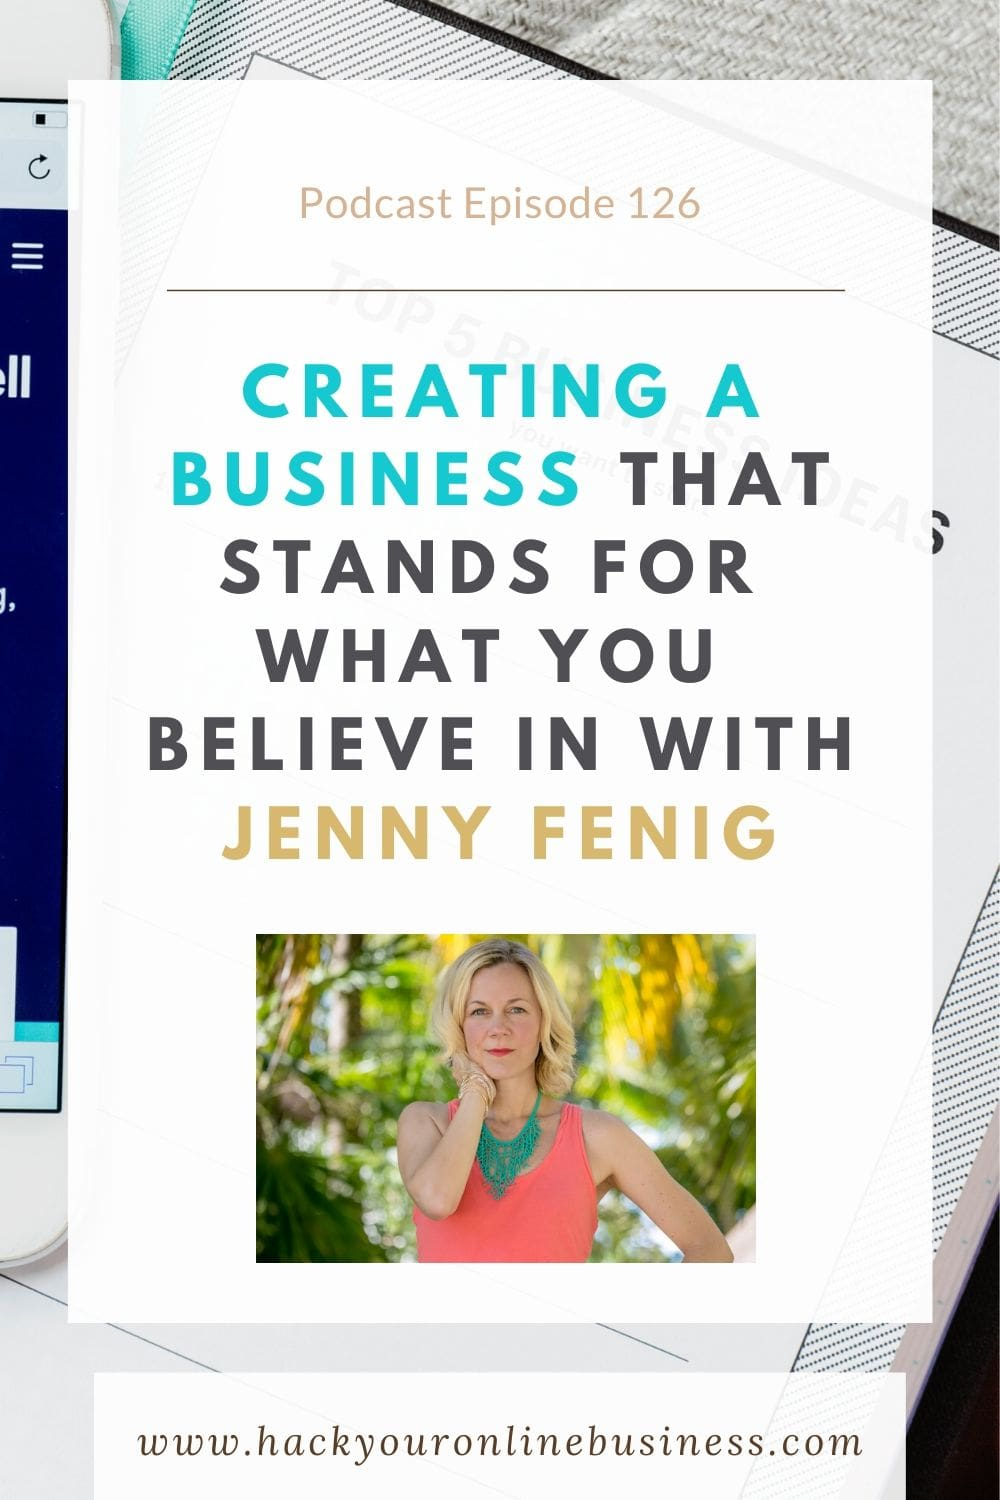 Creating a business that you believe in